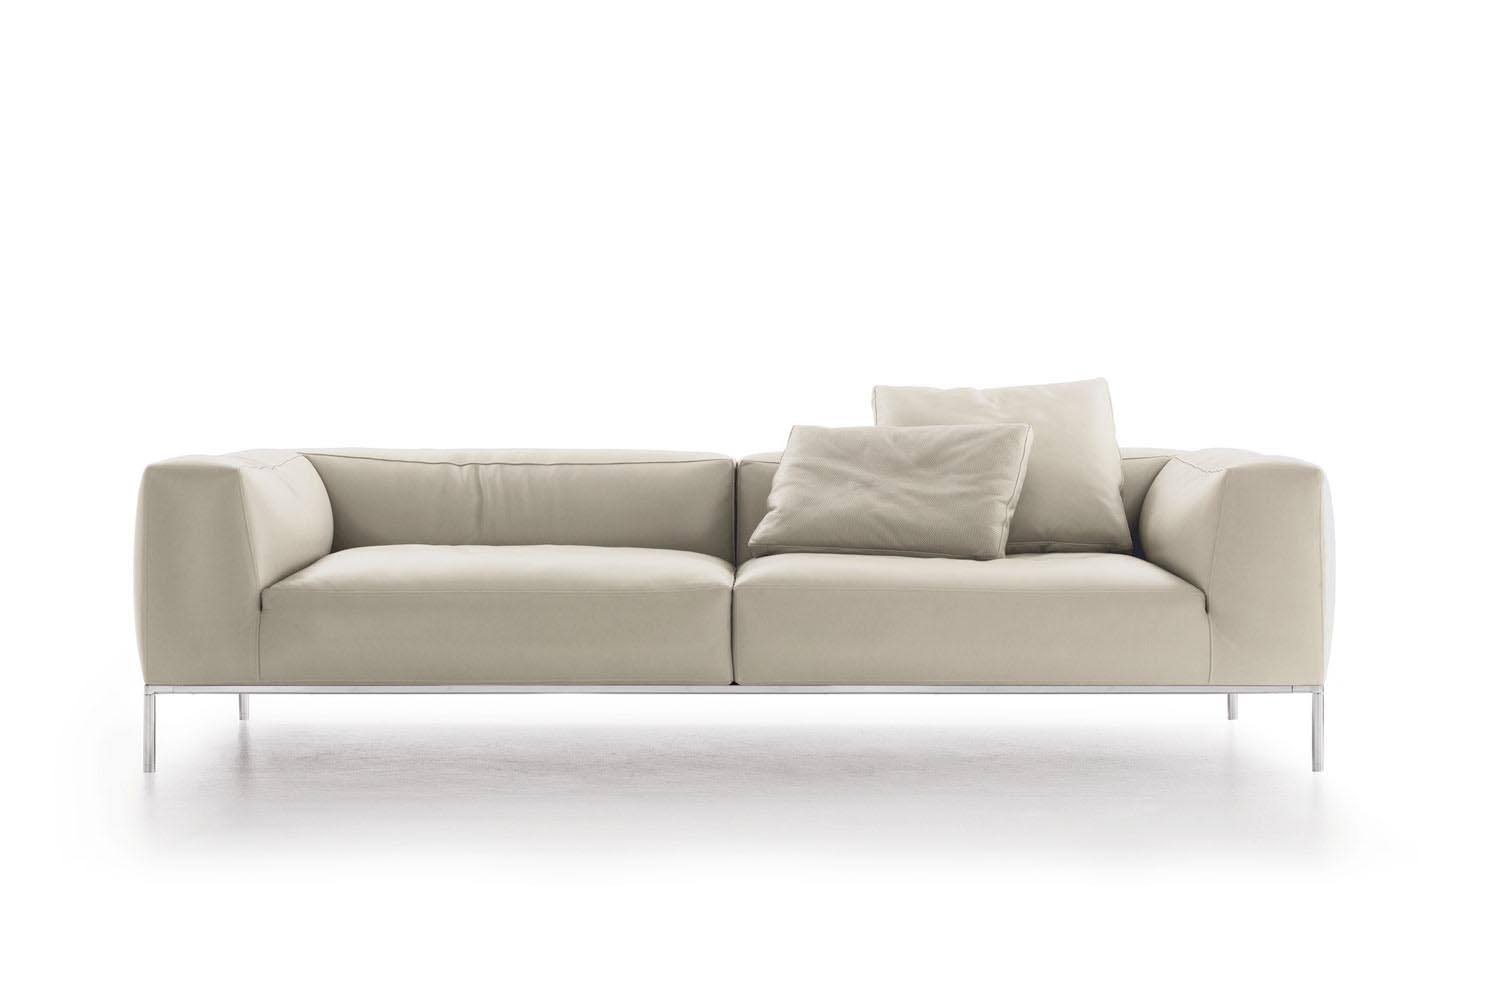 Frank 2012 Sofa by Antonio Citterio for B&B Italia